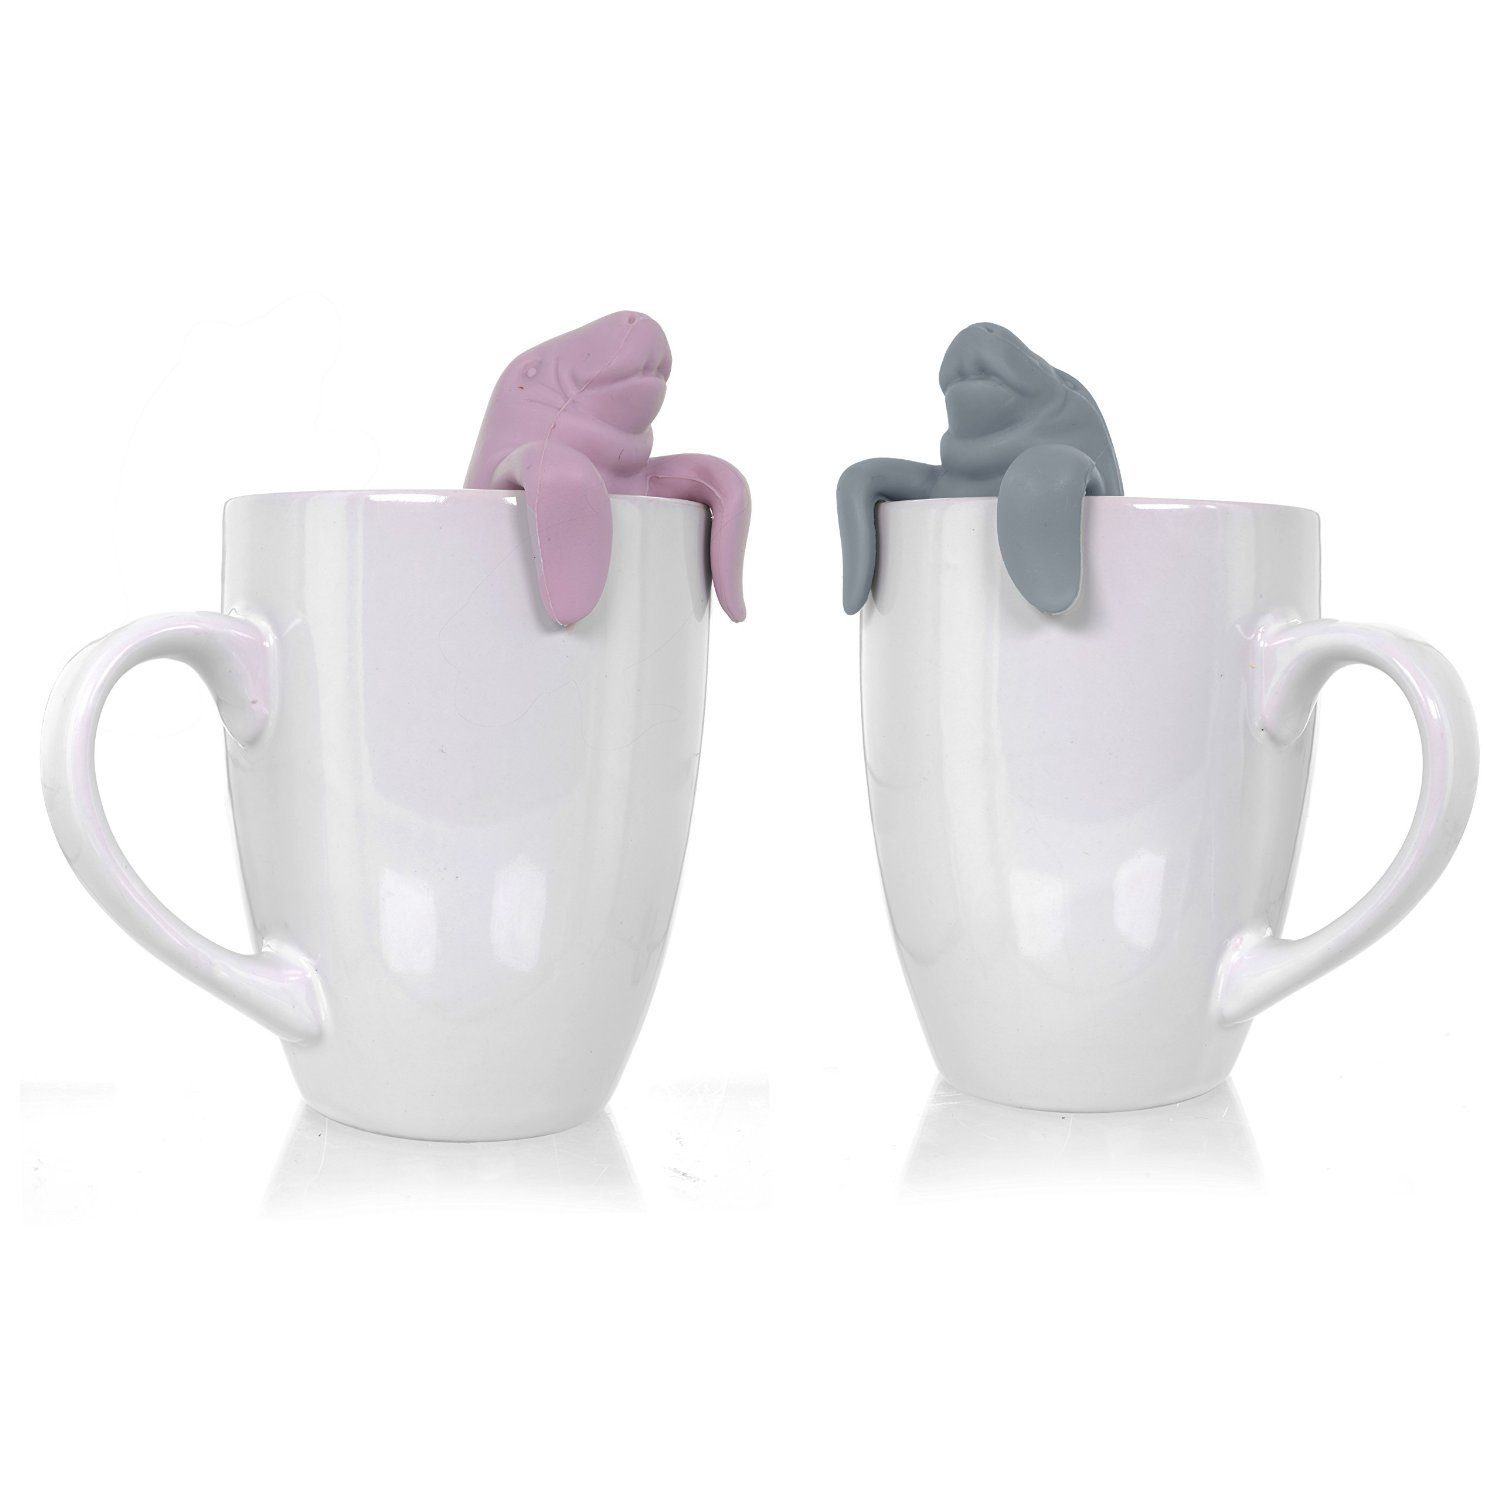 Wishstone Mr and Mrs Manatea Tea Infuser Gift Set Of 2 Only $11.95 (Reg. $24.99)!